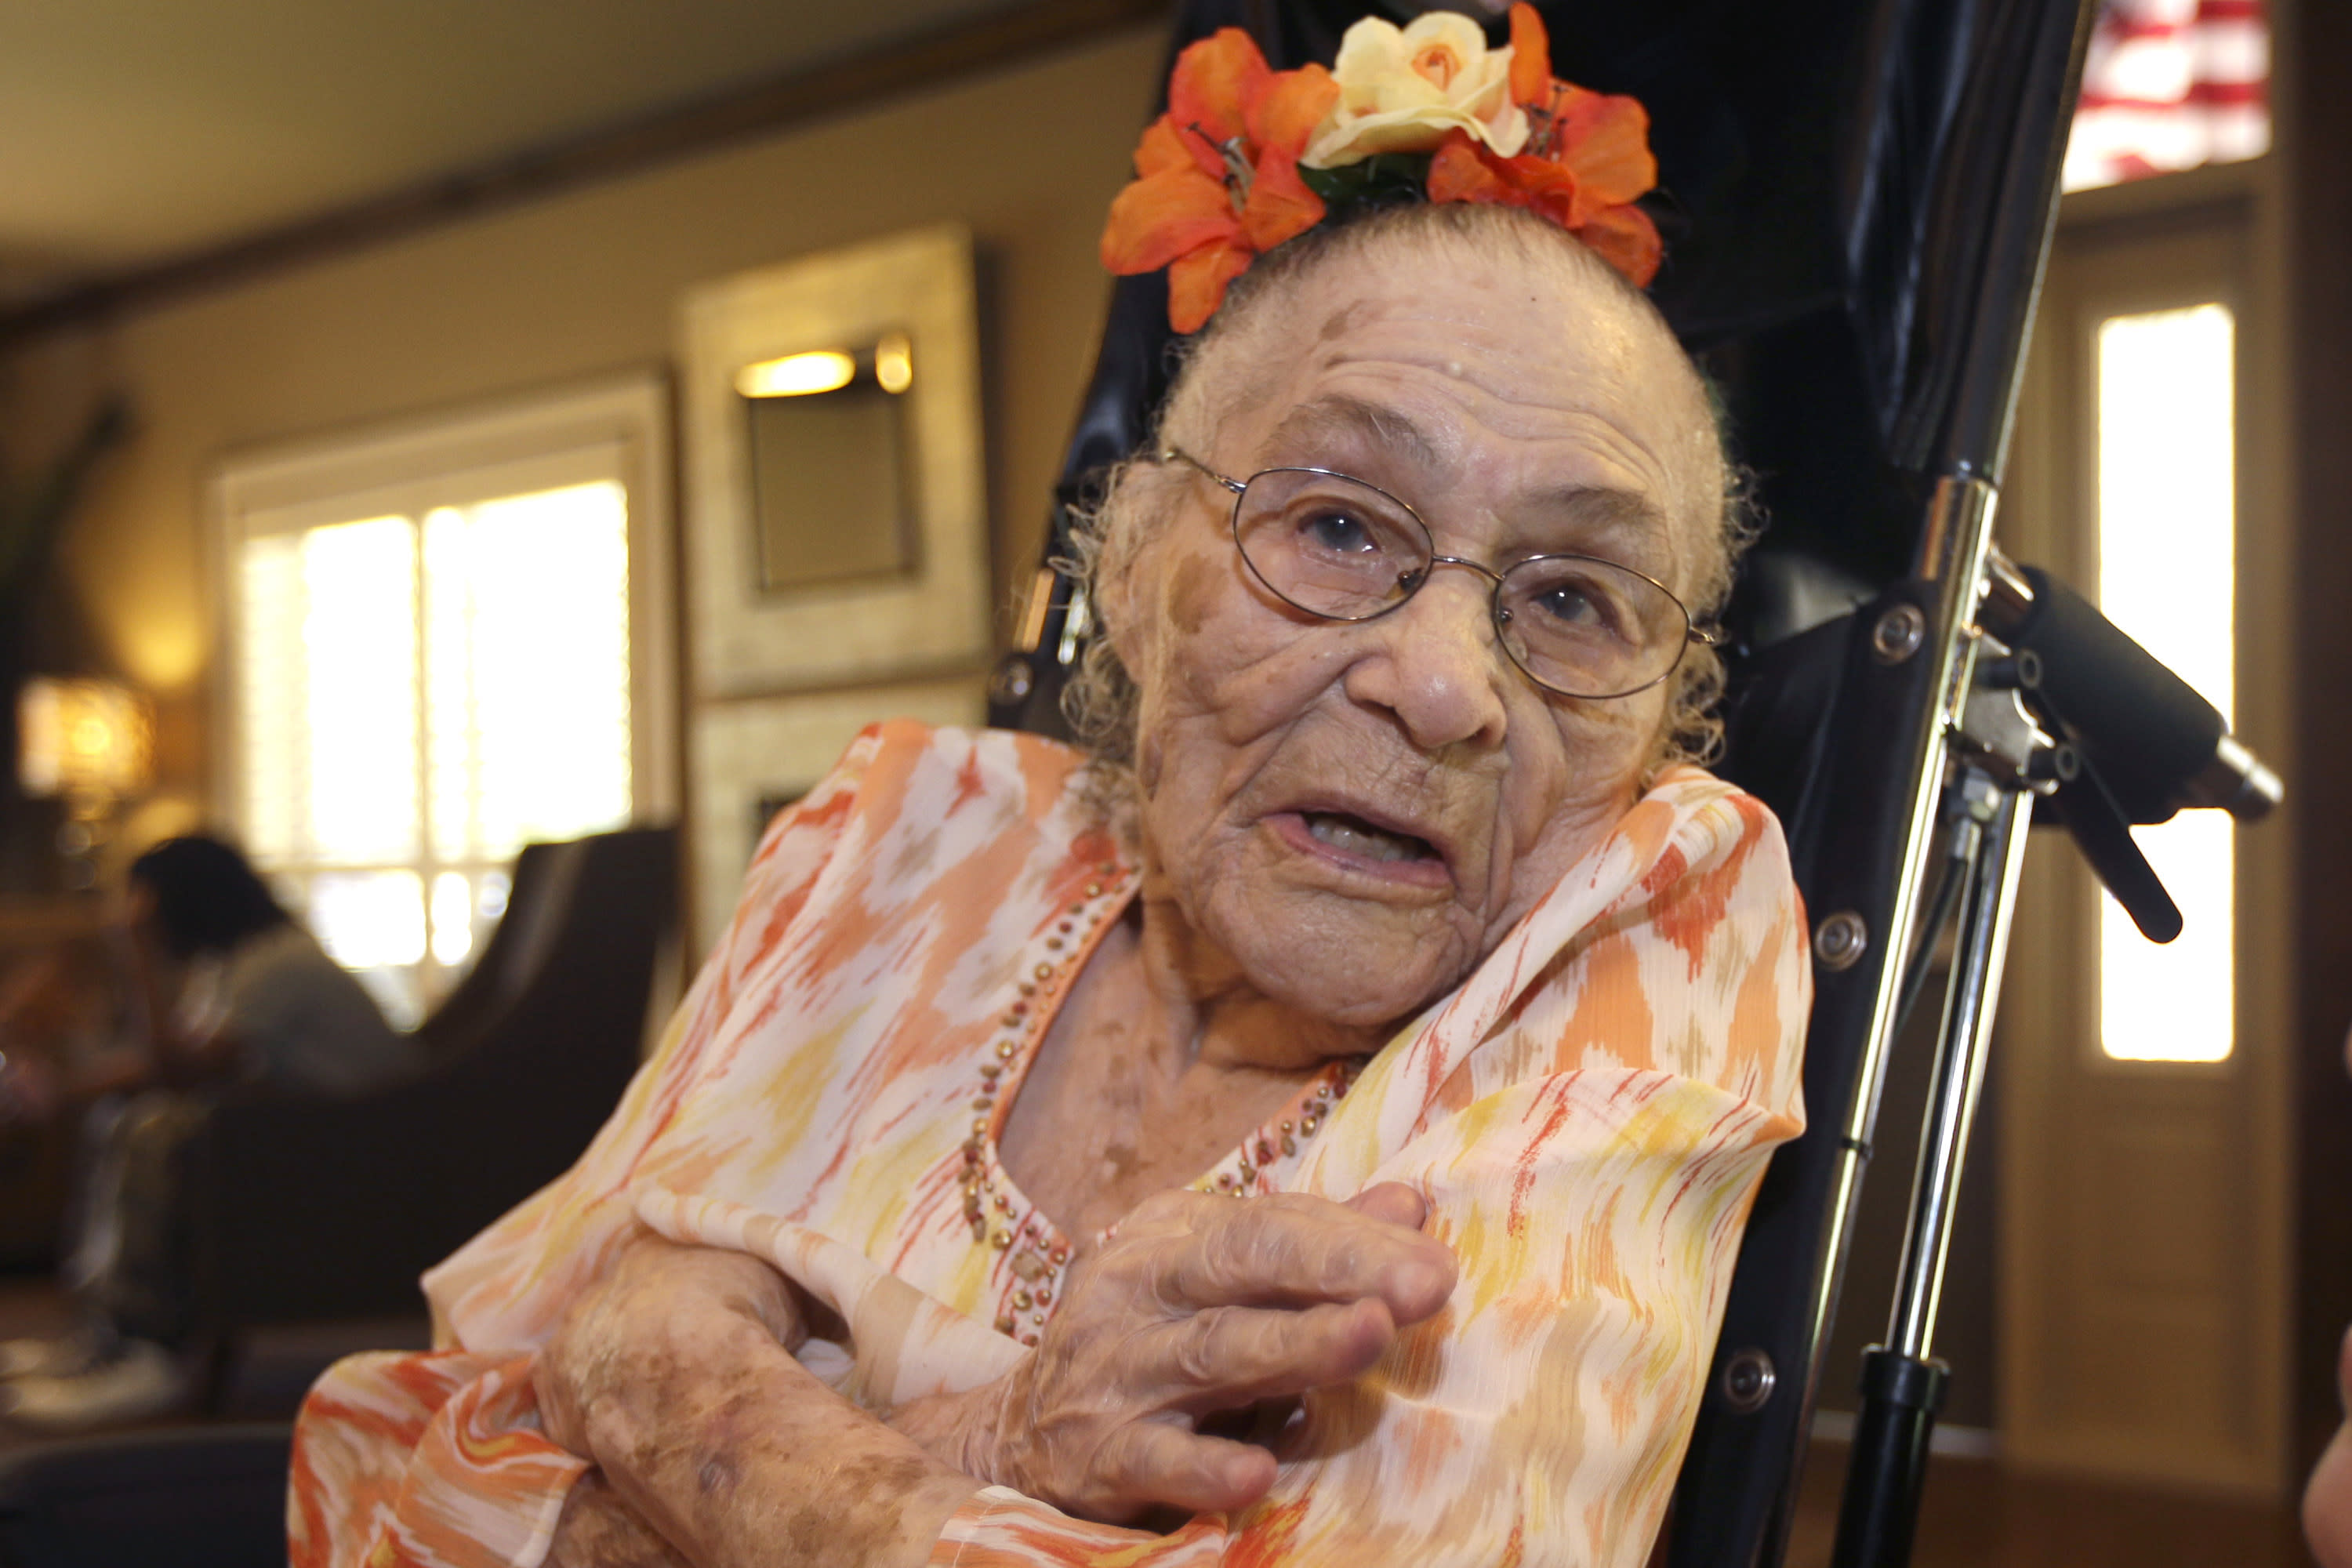 Arkansas woman now world's oldest person, wants Obama visit